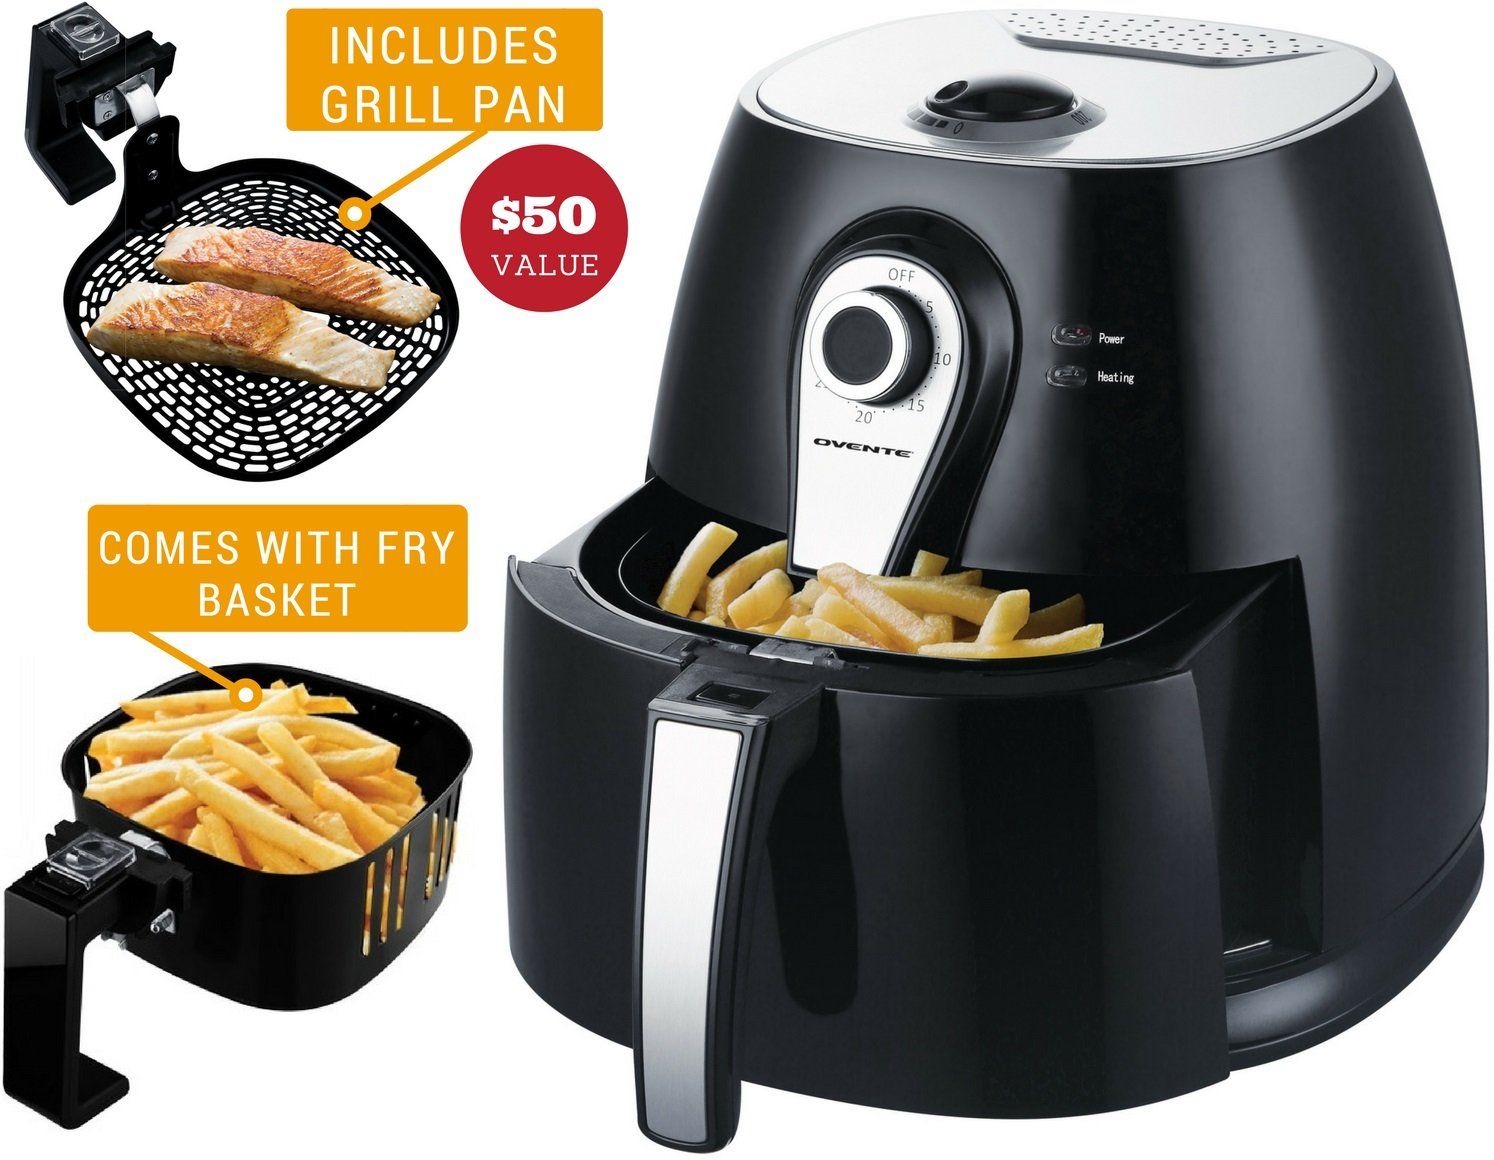 Ovente FAM21302B Electric Air Fryer with Timer, 3.2 Qt, 1400 Watts, Adjustable Temperature Controls, Includes Fry Basket and Pan, Black, Manual